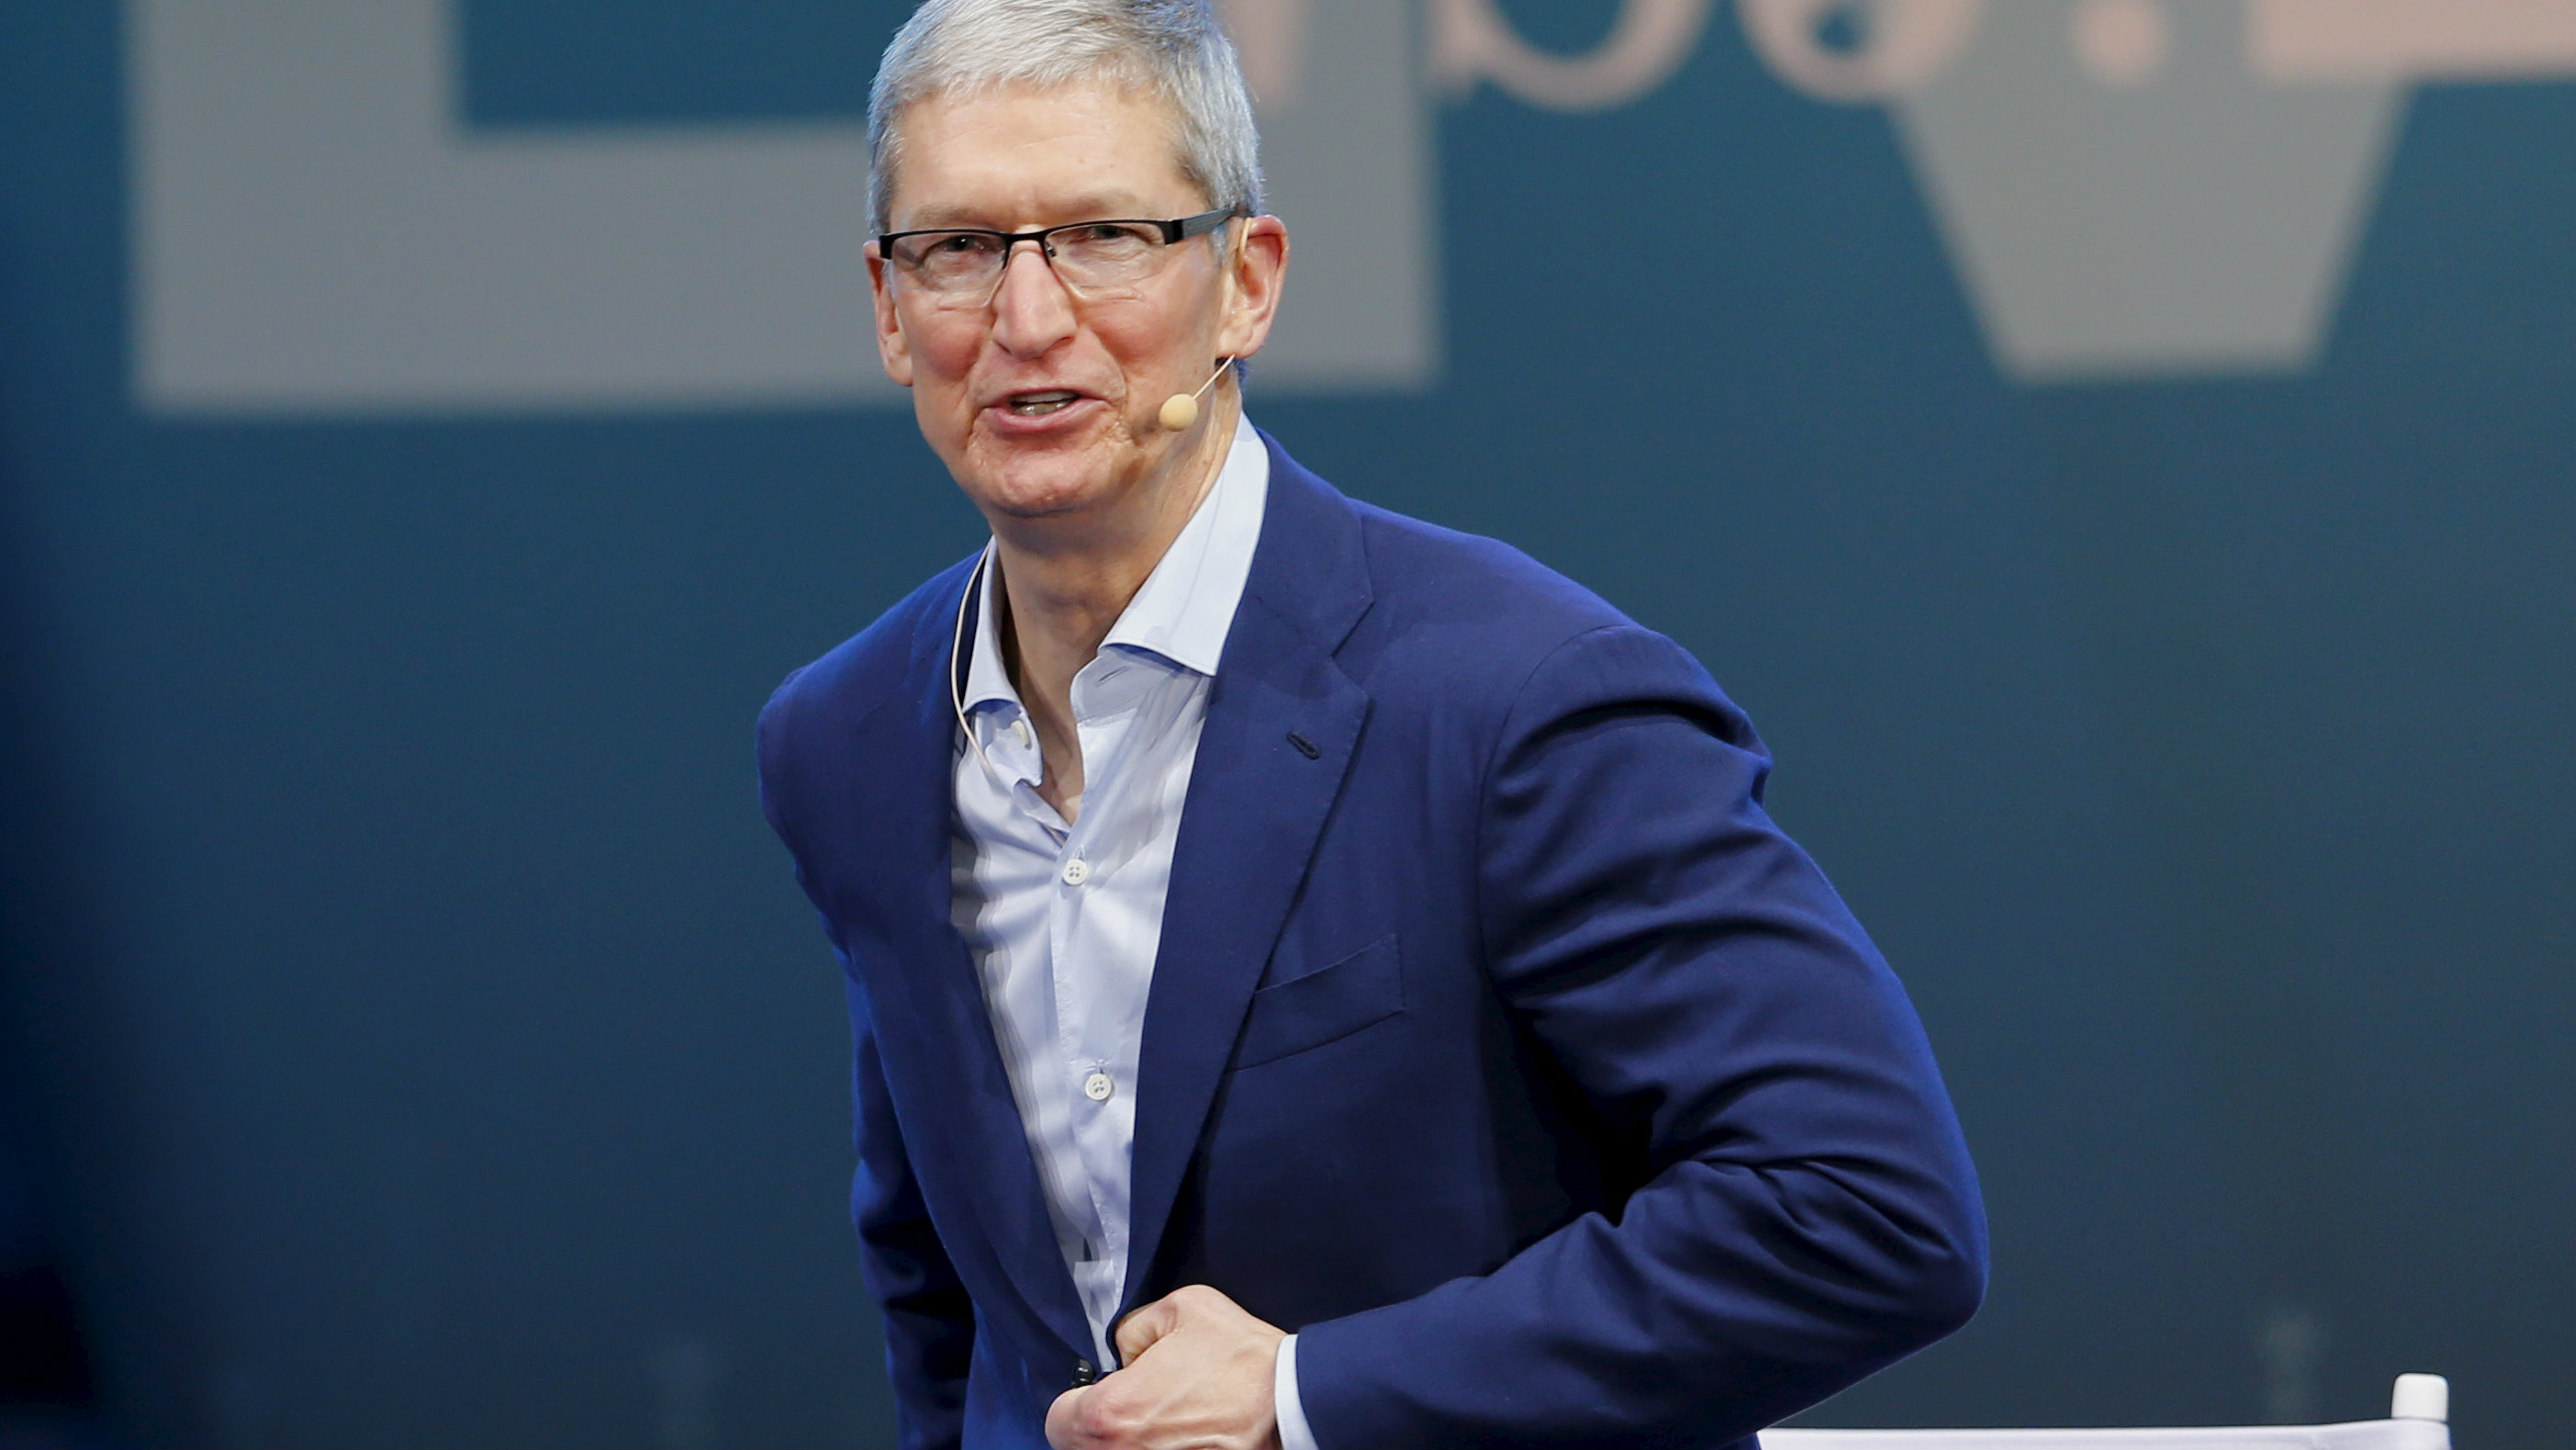 Apple CEO Tim Cook speaks during the Wall Street Journal Digital Live ( WSJDLive ) conference at the Montage hotline Laguna Beach, California October 19, 2015. REUTERS/Mike Blake